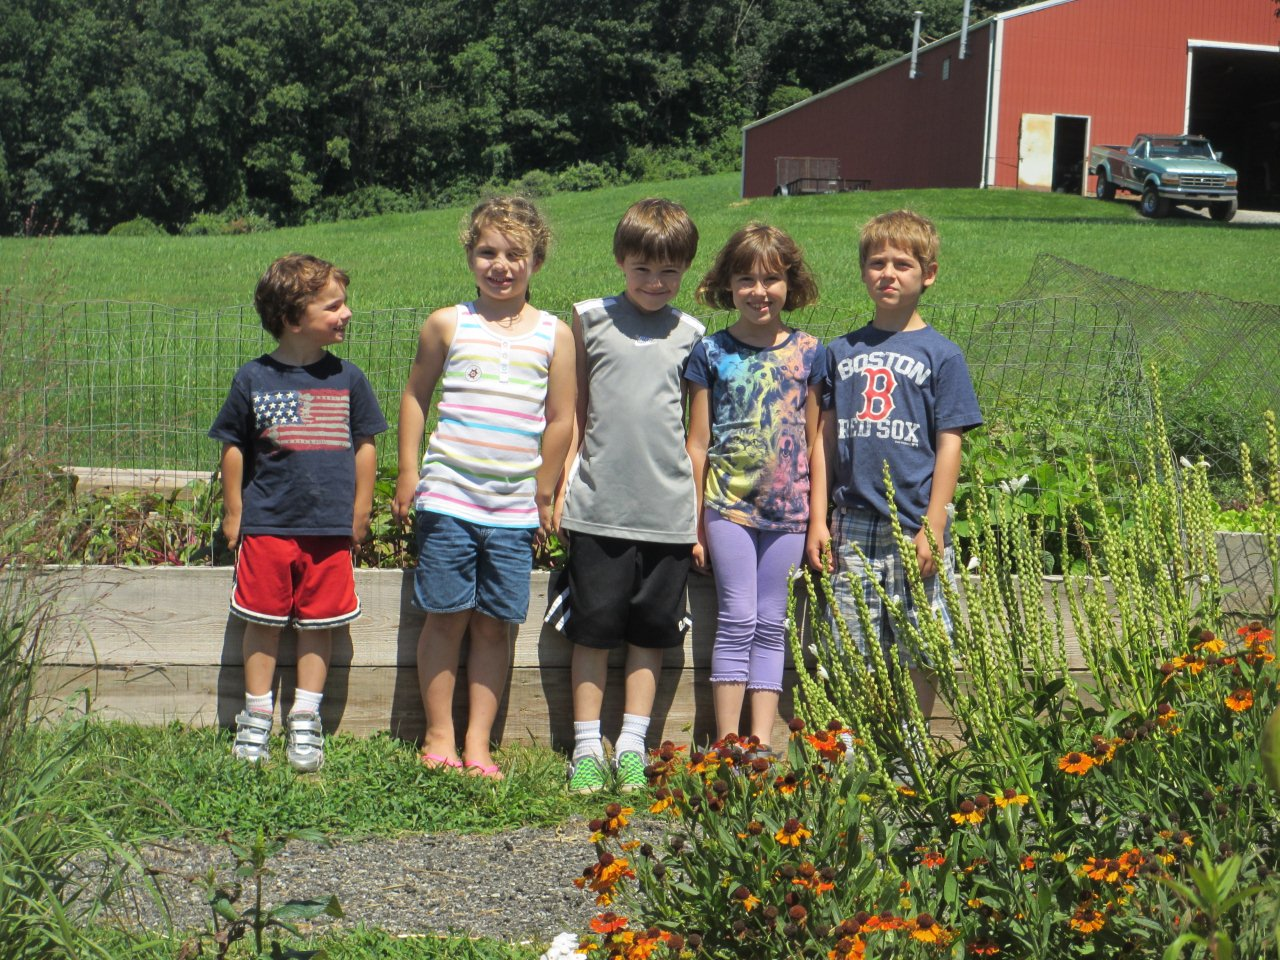 A group of children posing for a photo at Okhehocking Nature Center